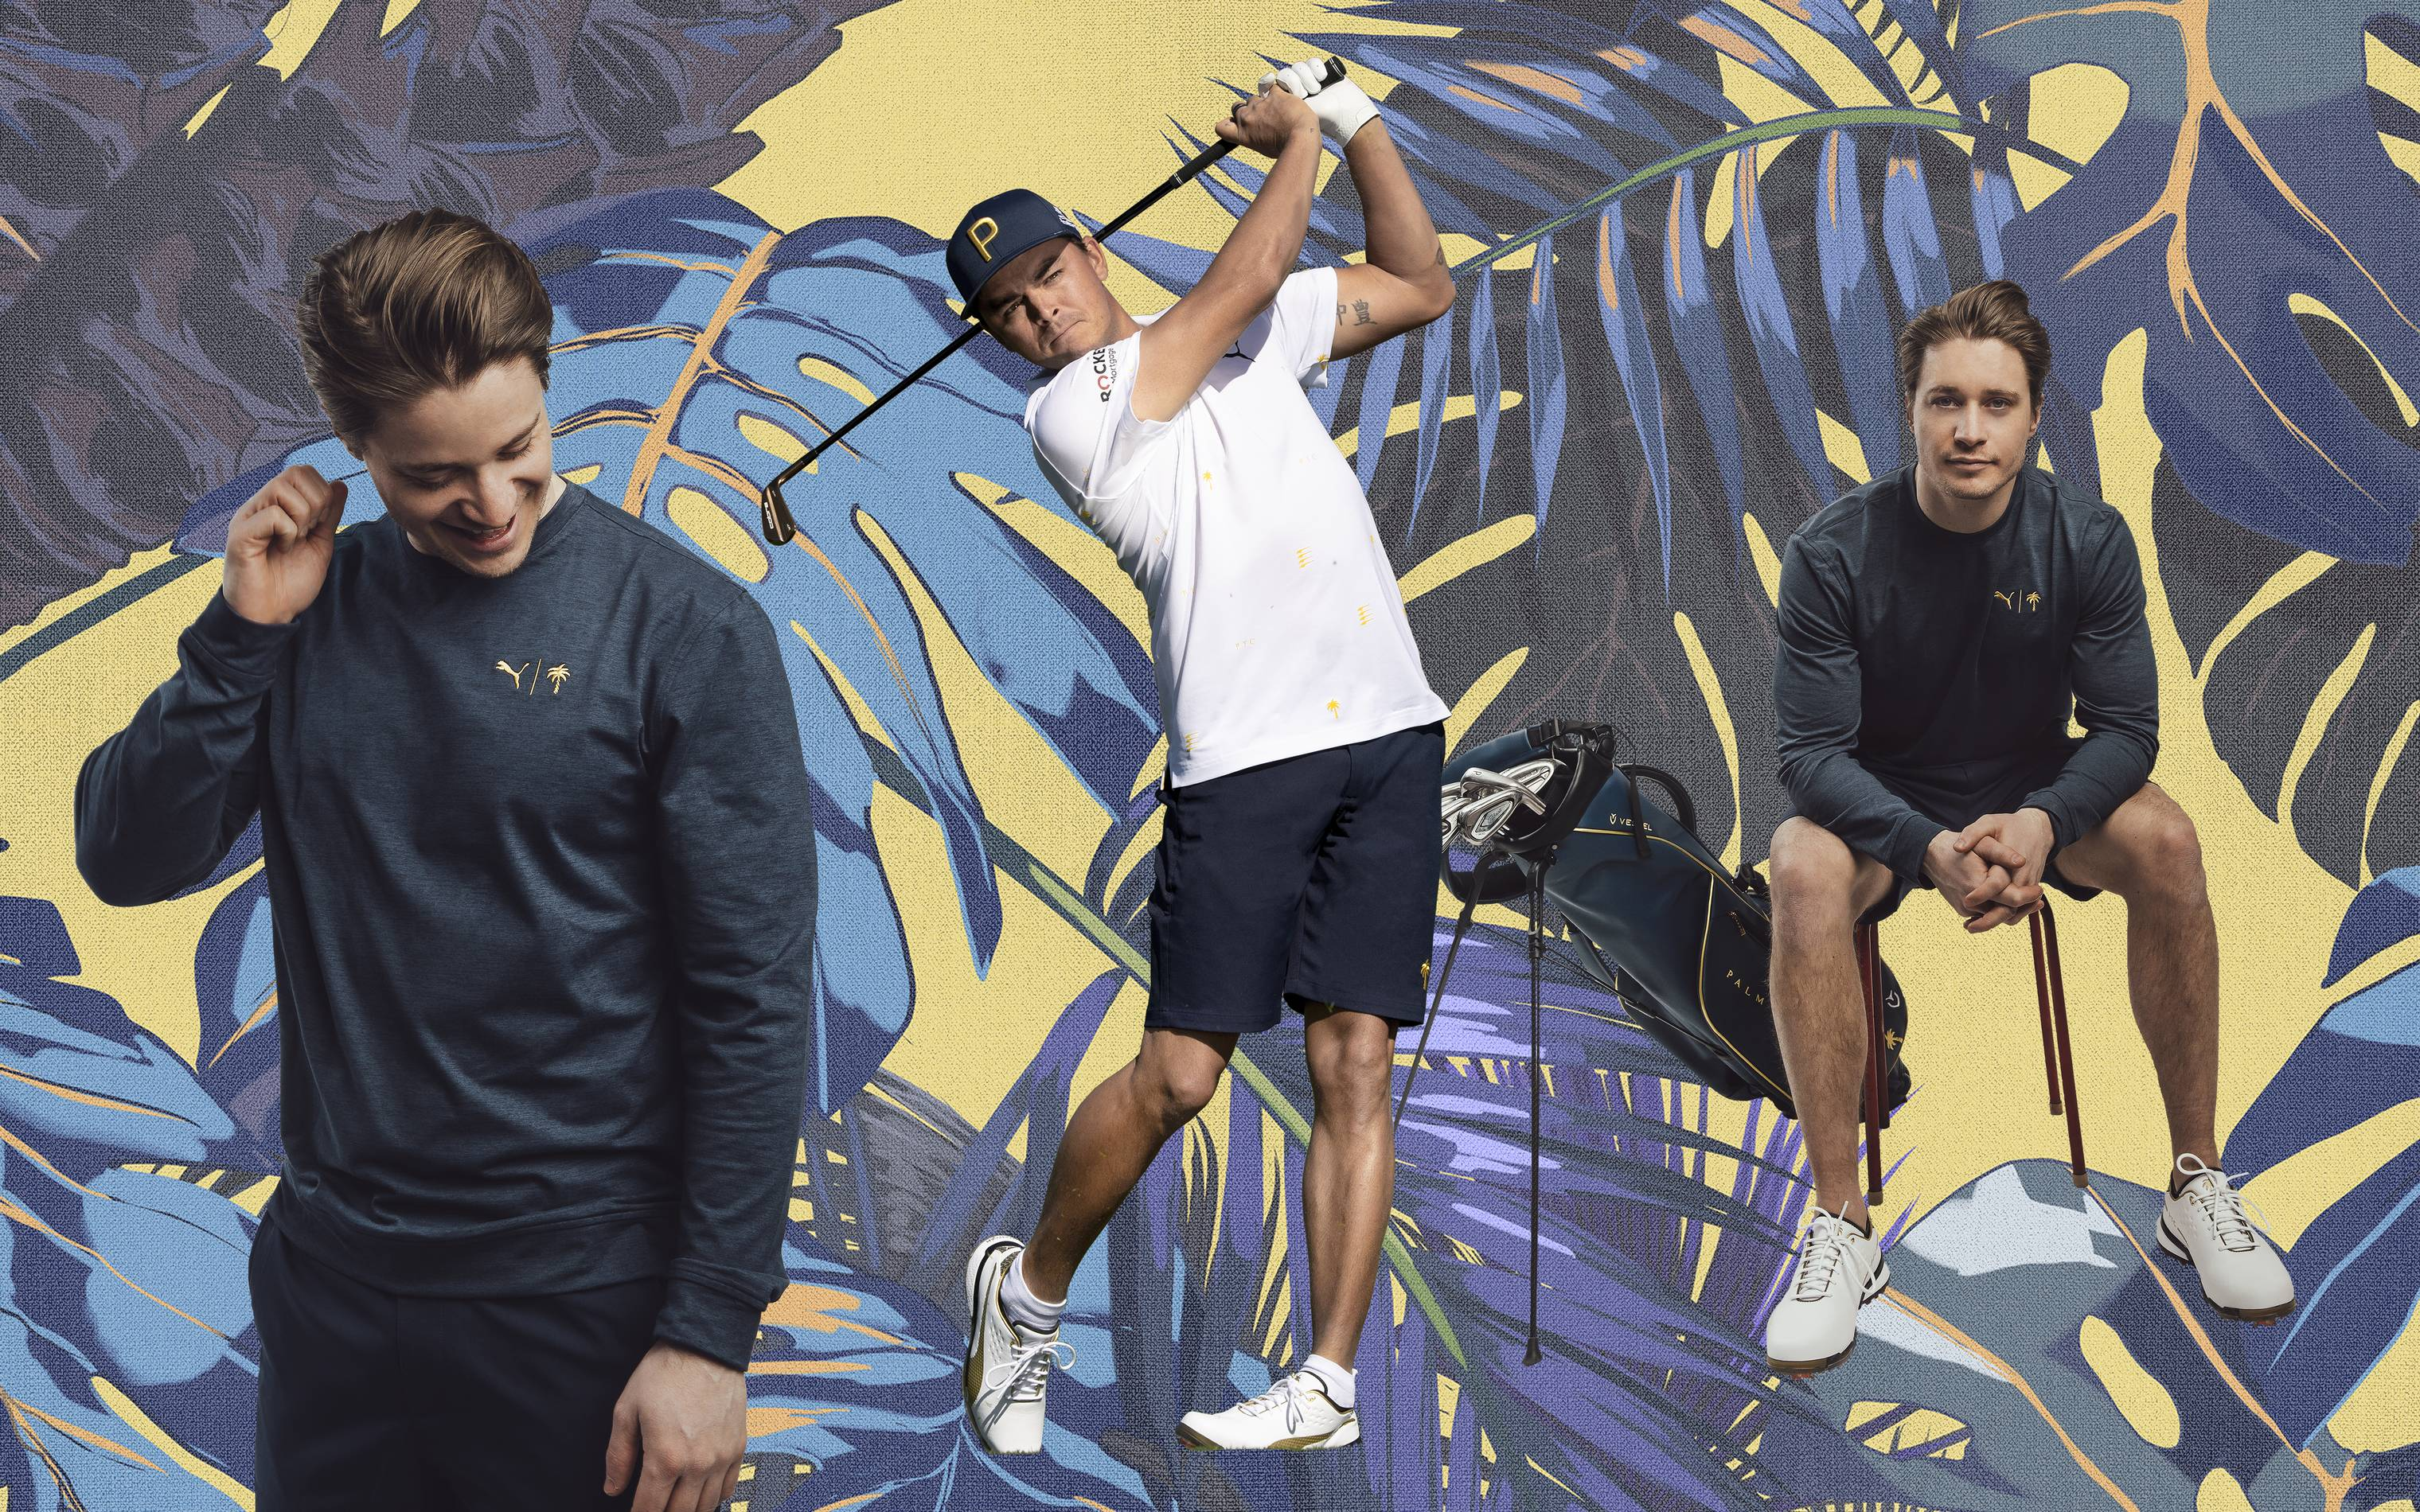 Kygo and Rickie Fowler model the Puma x Palm Tree Crew collection